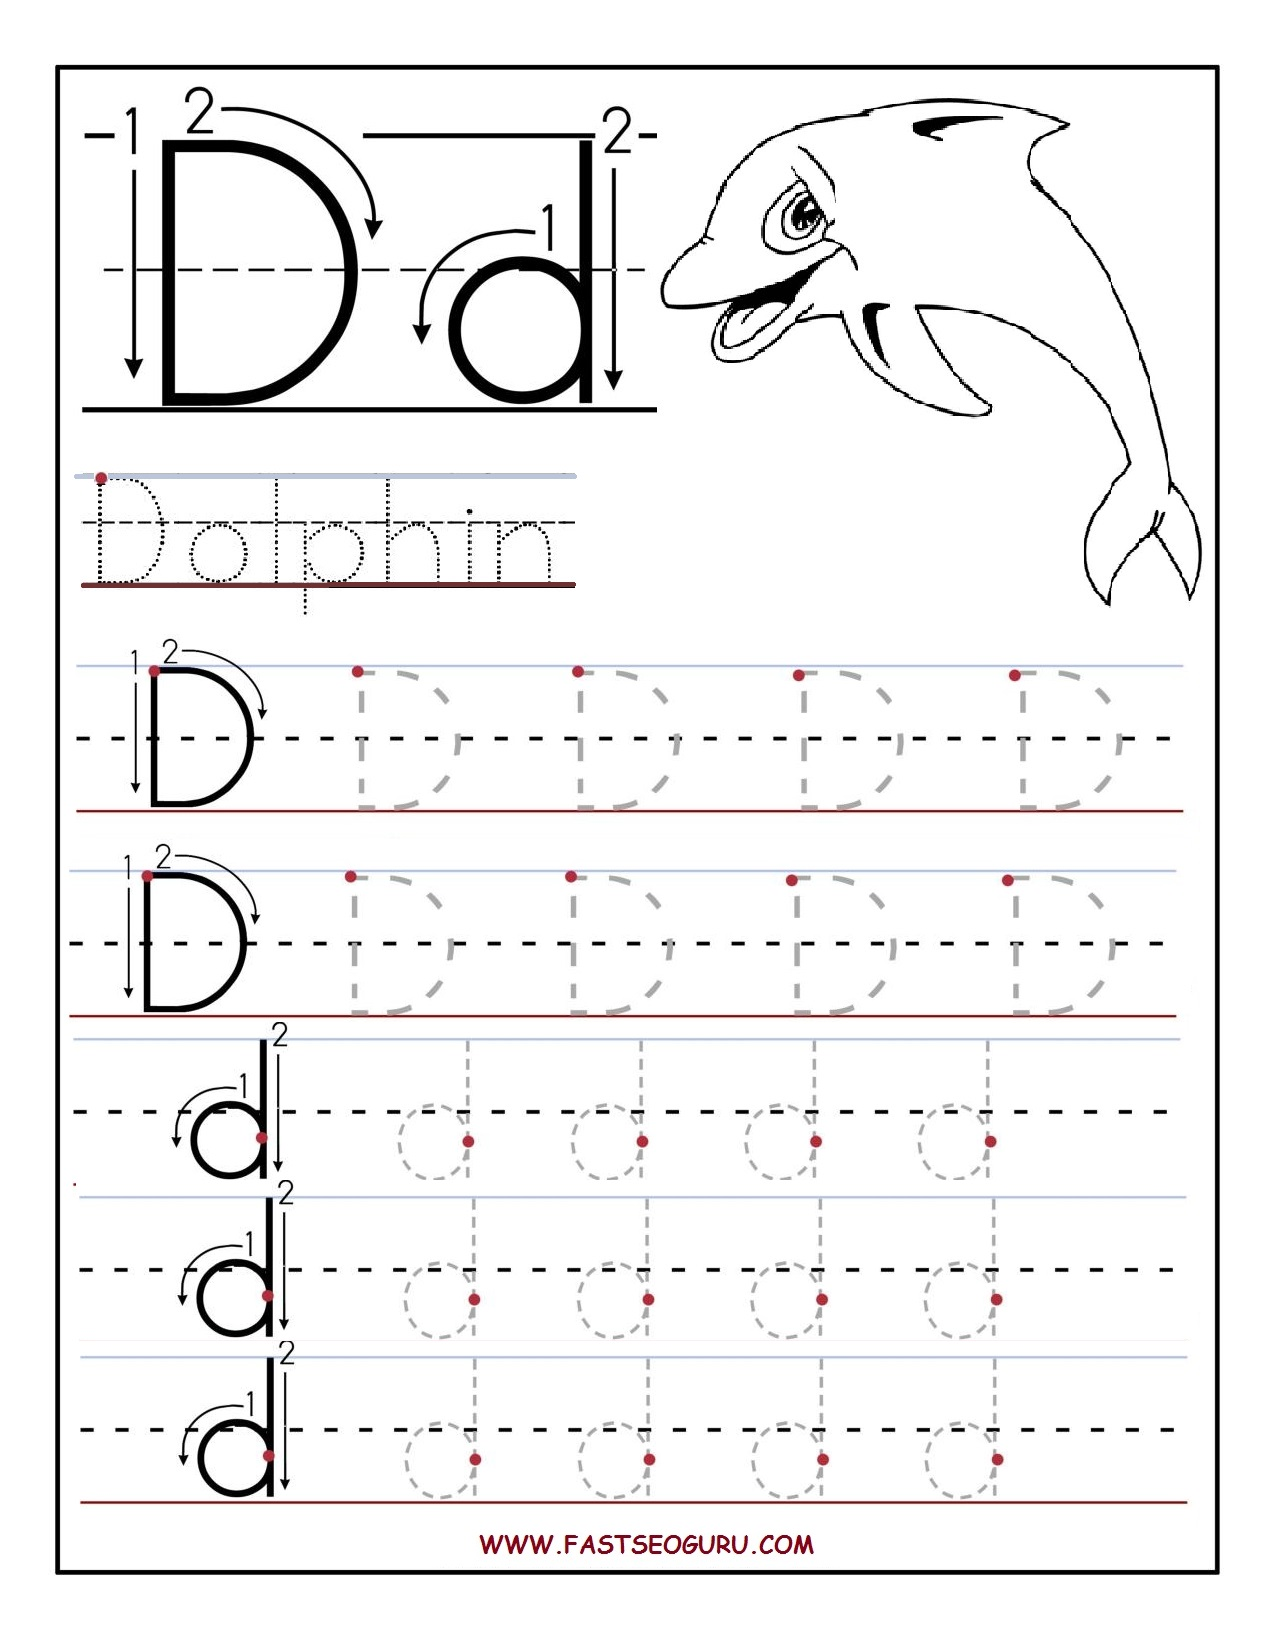 tracing worksheets letter d and printable letters on pinterest. Black Bedroom Furniture Sets. Home Design Ideas